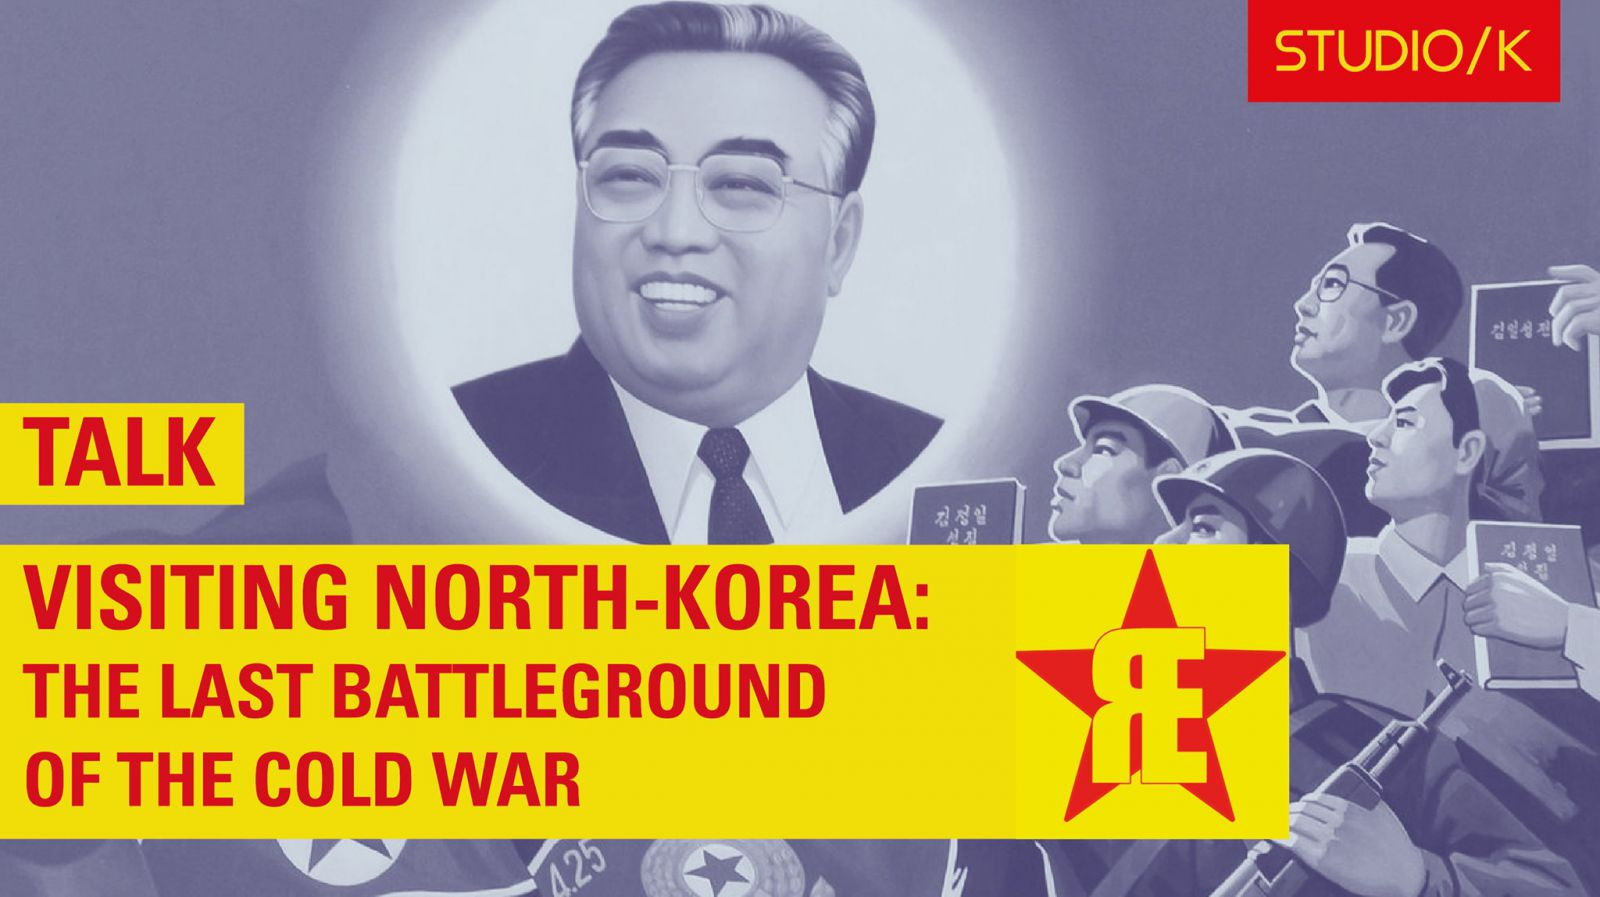 Visiting North-Korea: The last battleground of the cold war